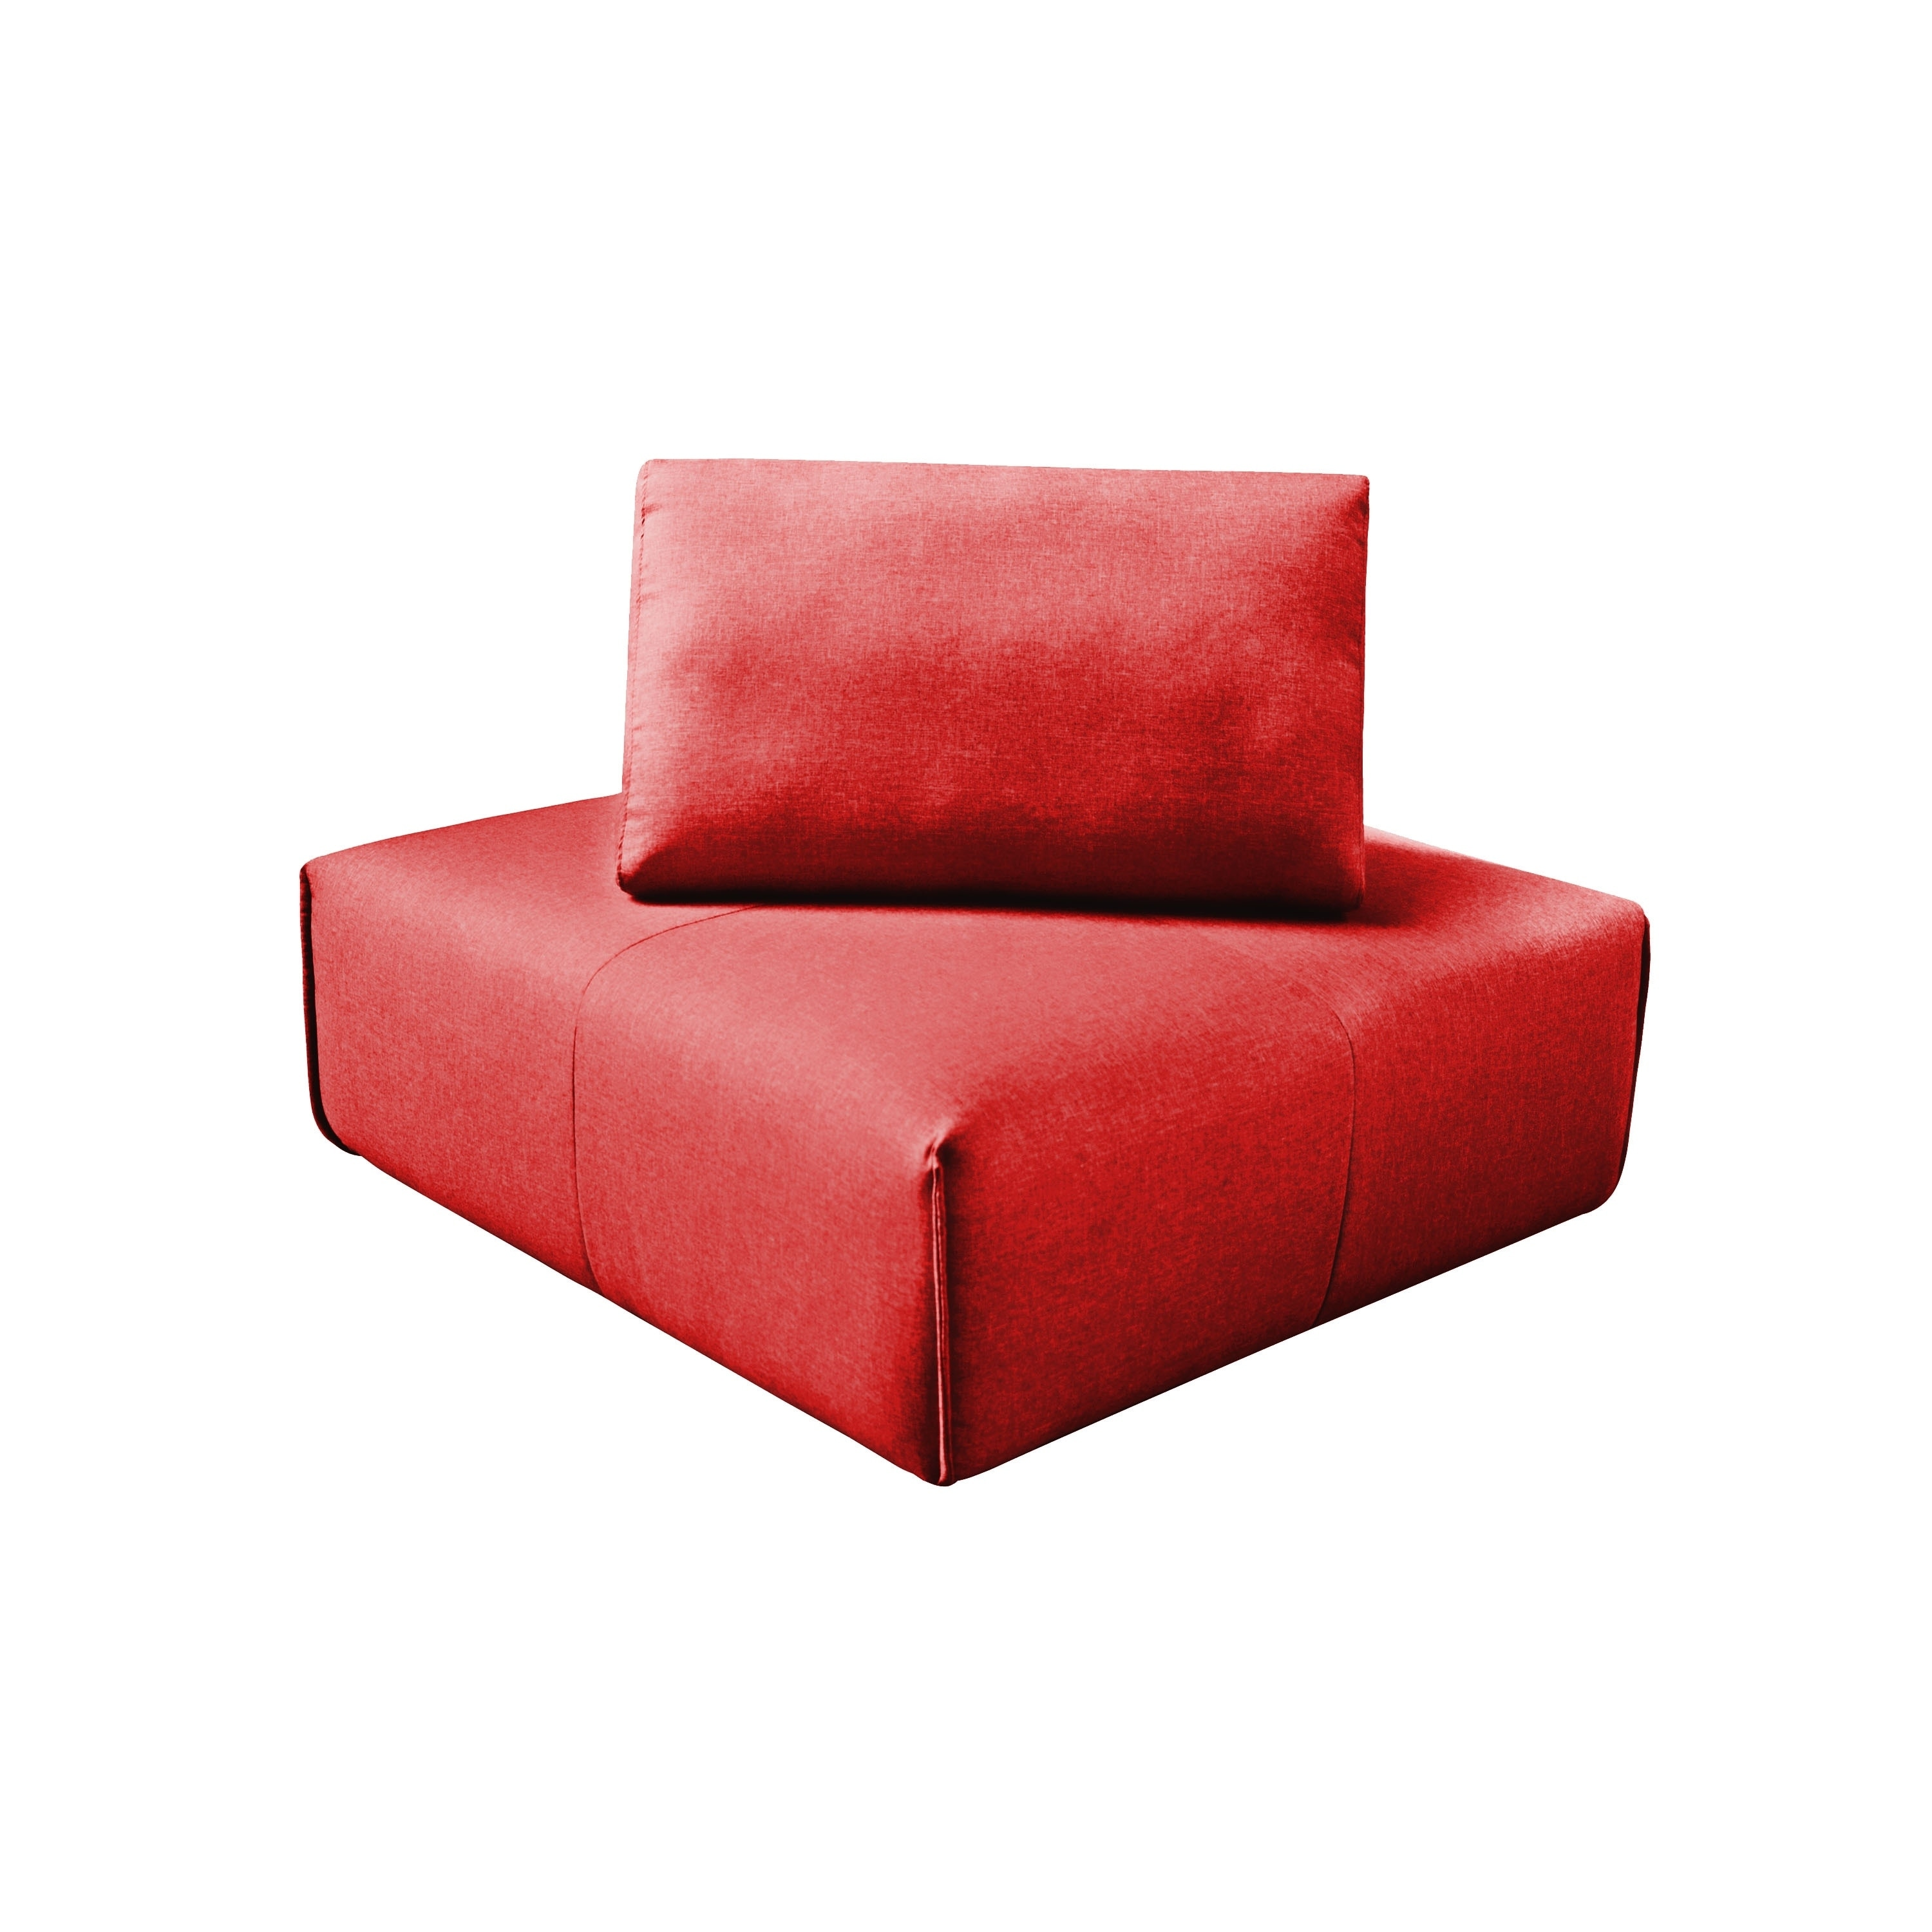 Aurelle Home Modular Corner Chair On Free Shipping Today 18613060